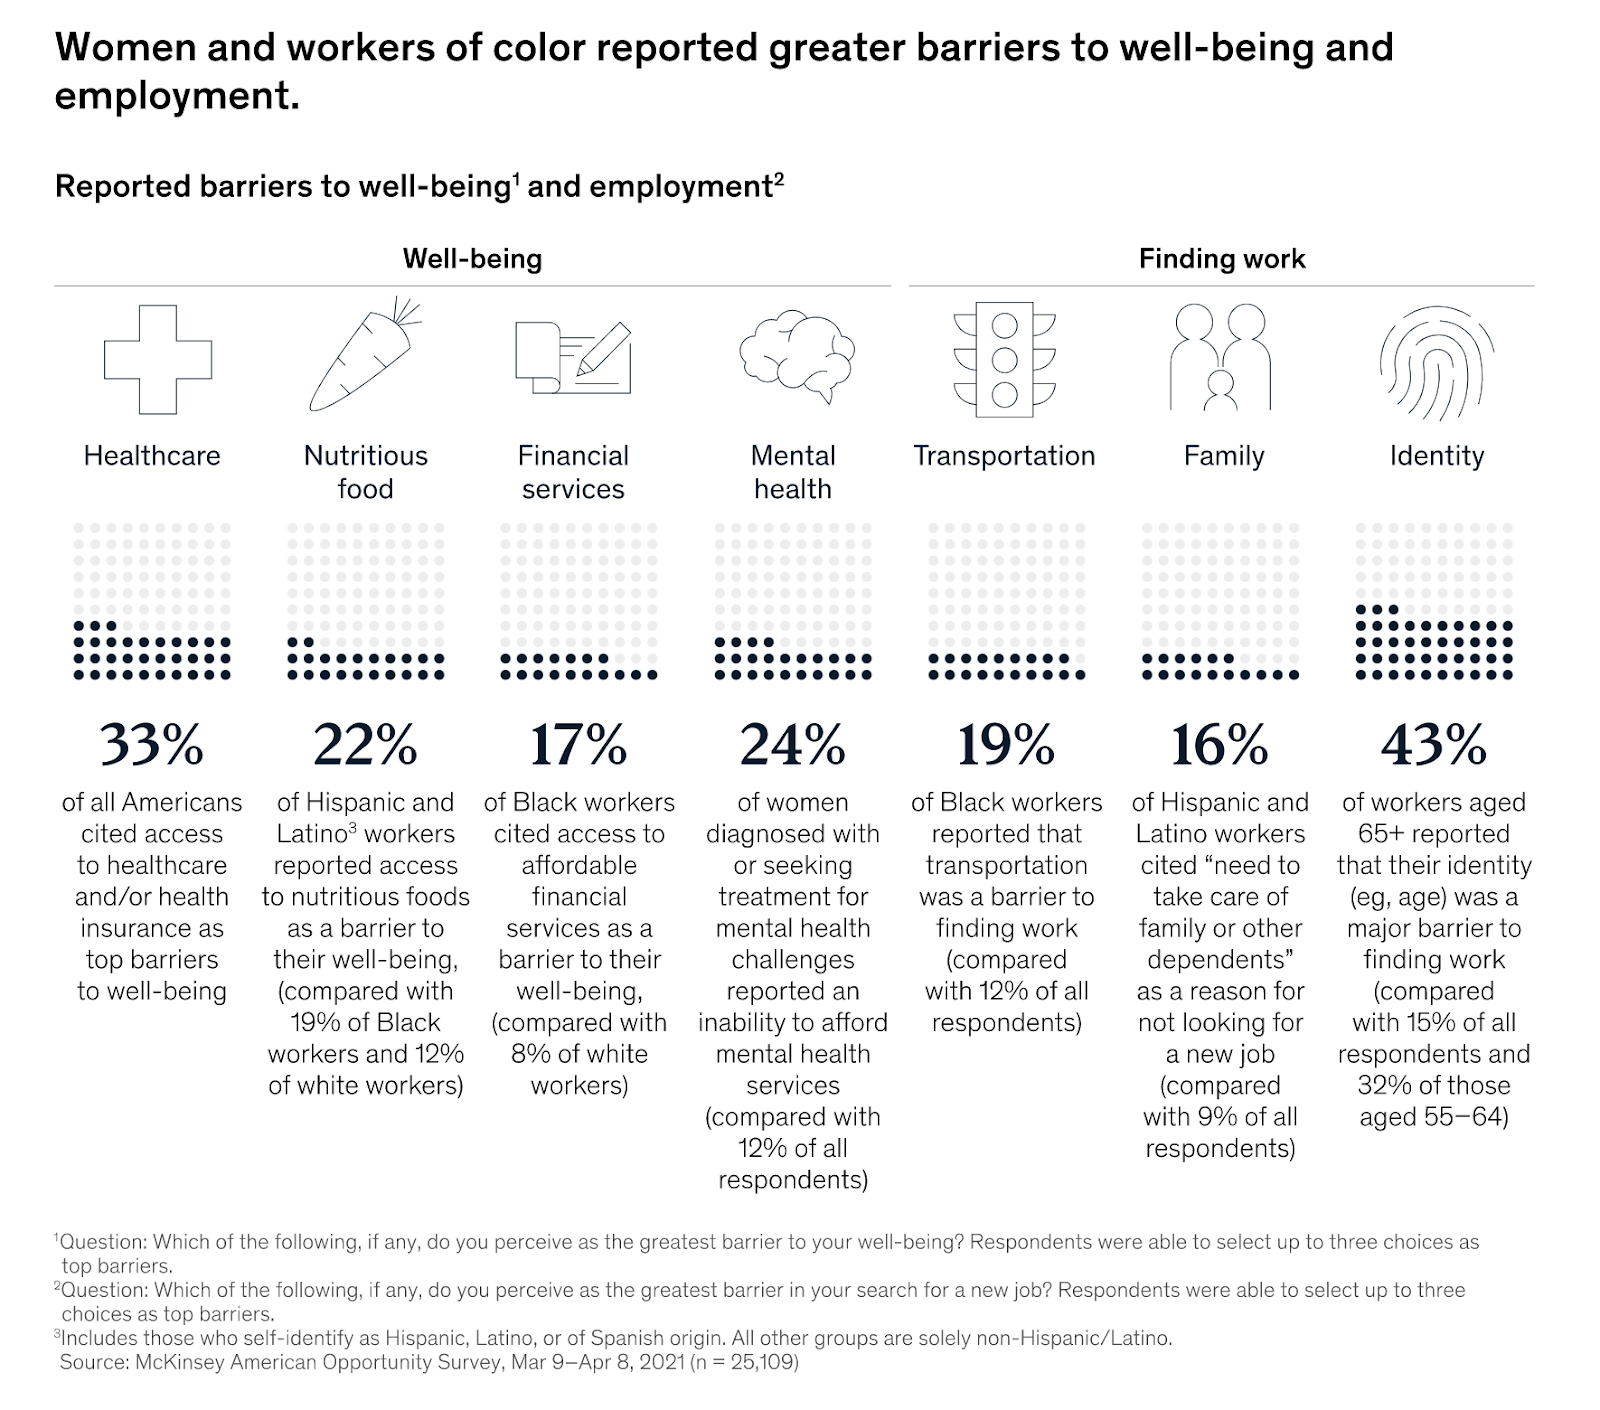 a survey showing that healthcare access is challenging for many people